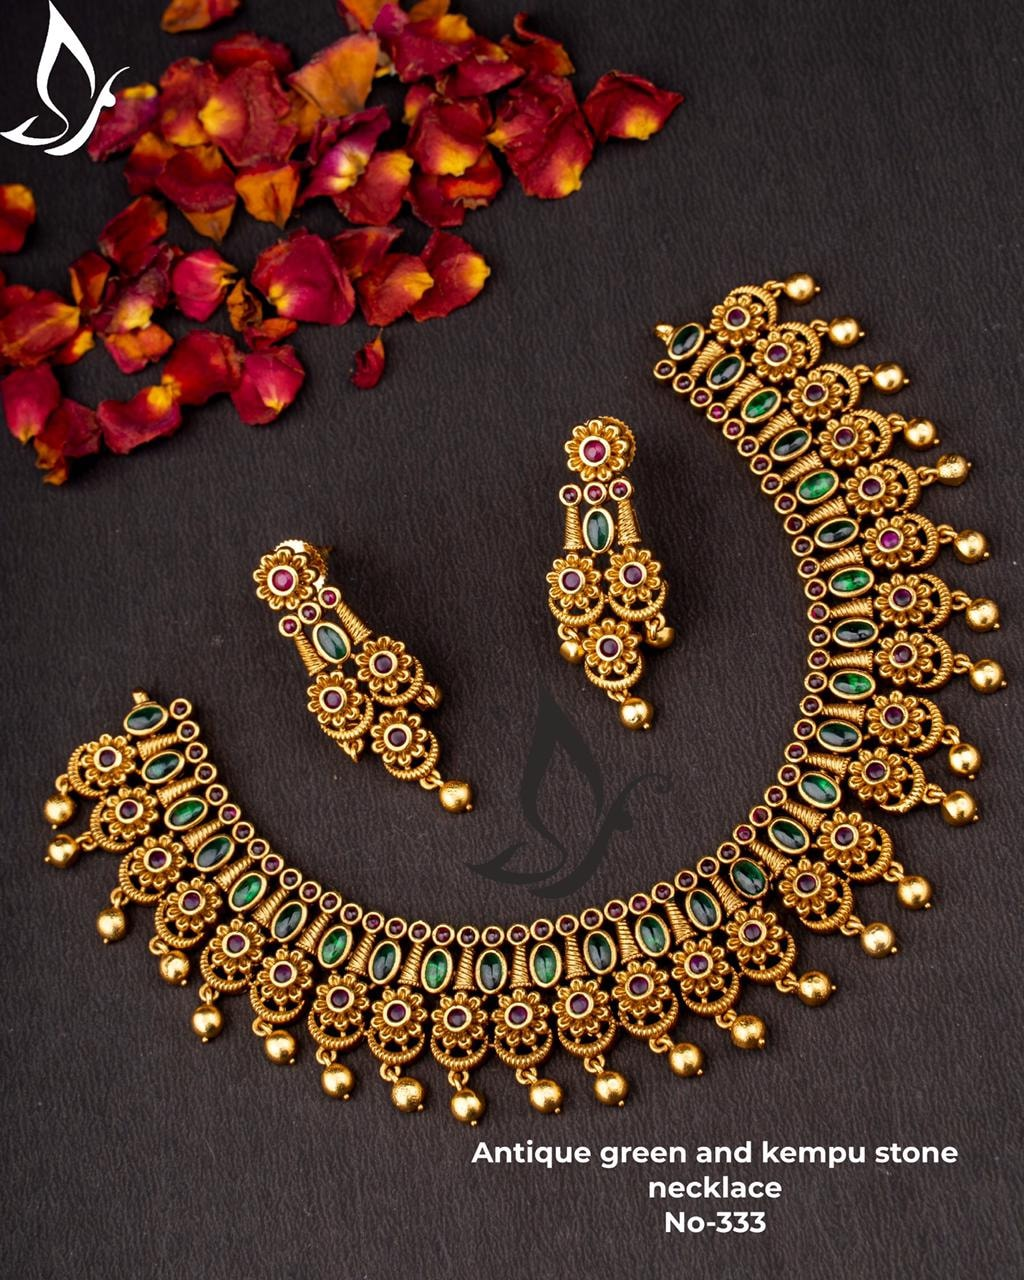 Beautiful one gram gold antique necklace studded with kempu stones and matching earrings. 16 grams gold necklace models 1 gram gold shop 1 gram gold jewellery for wedding